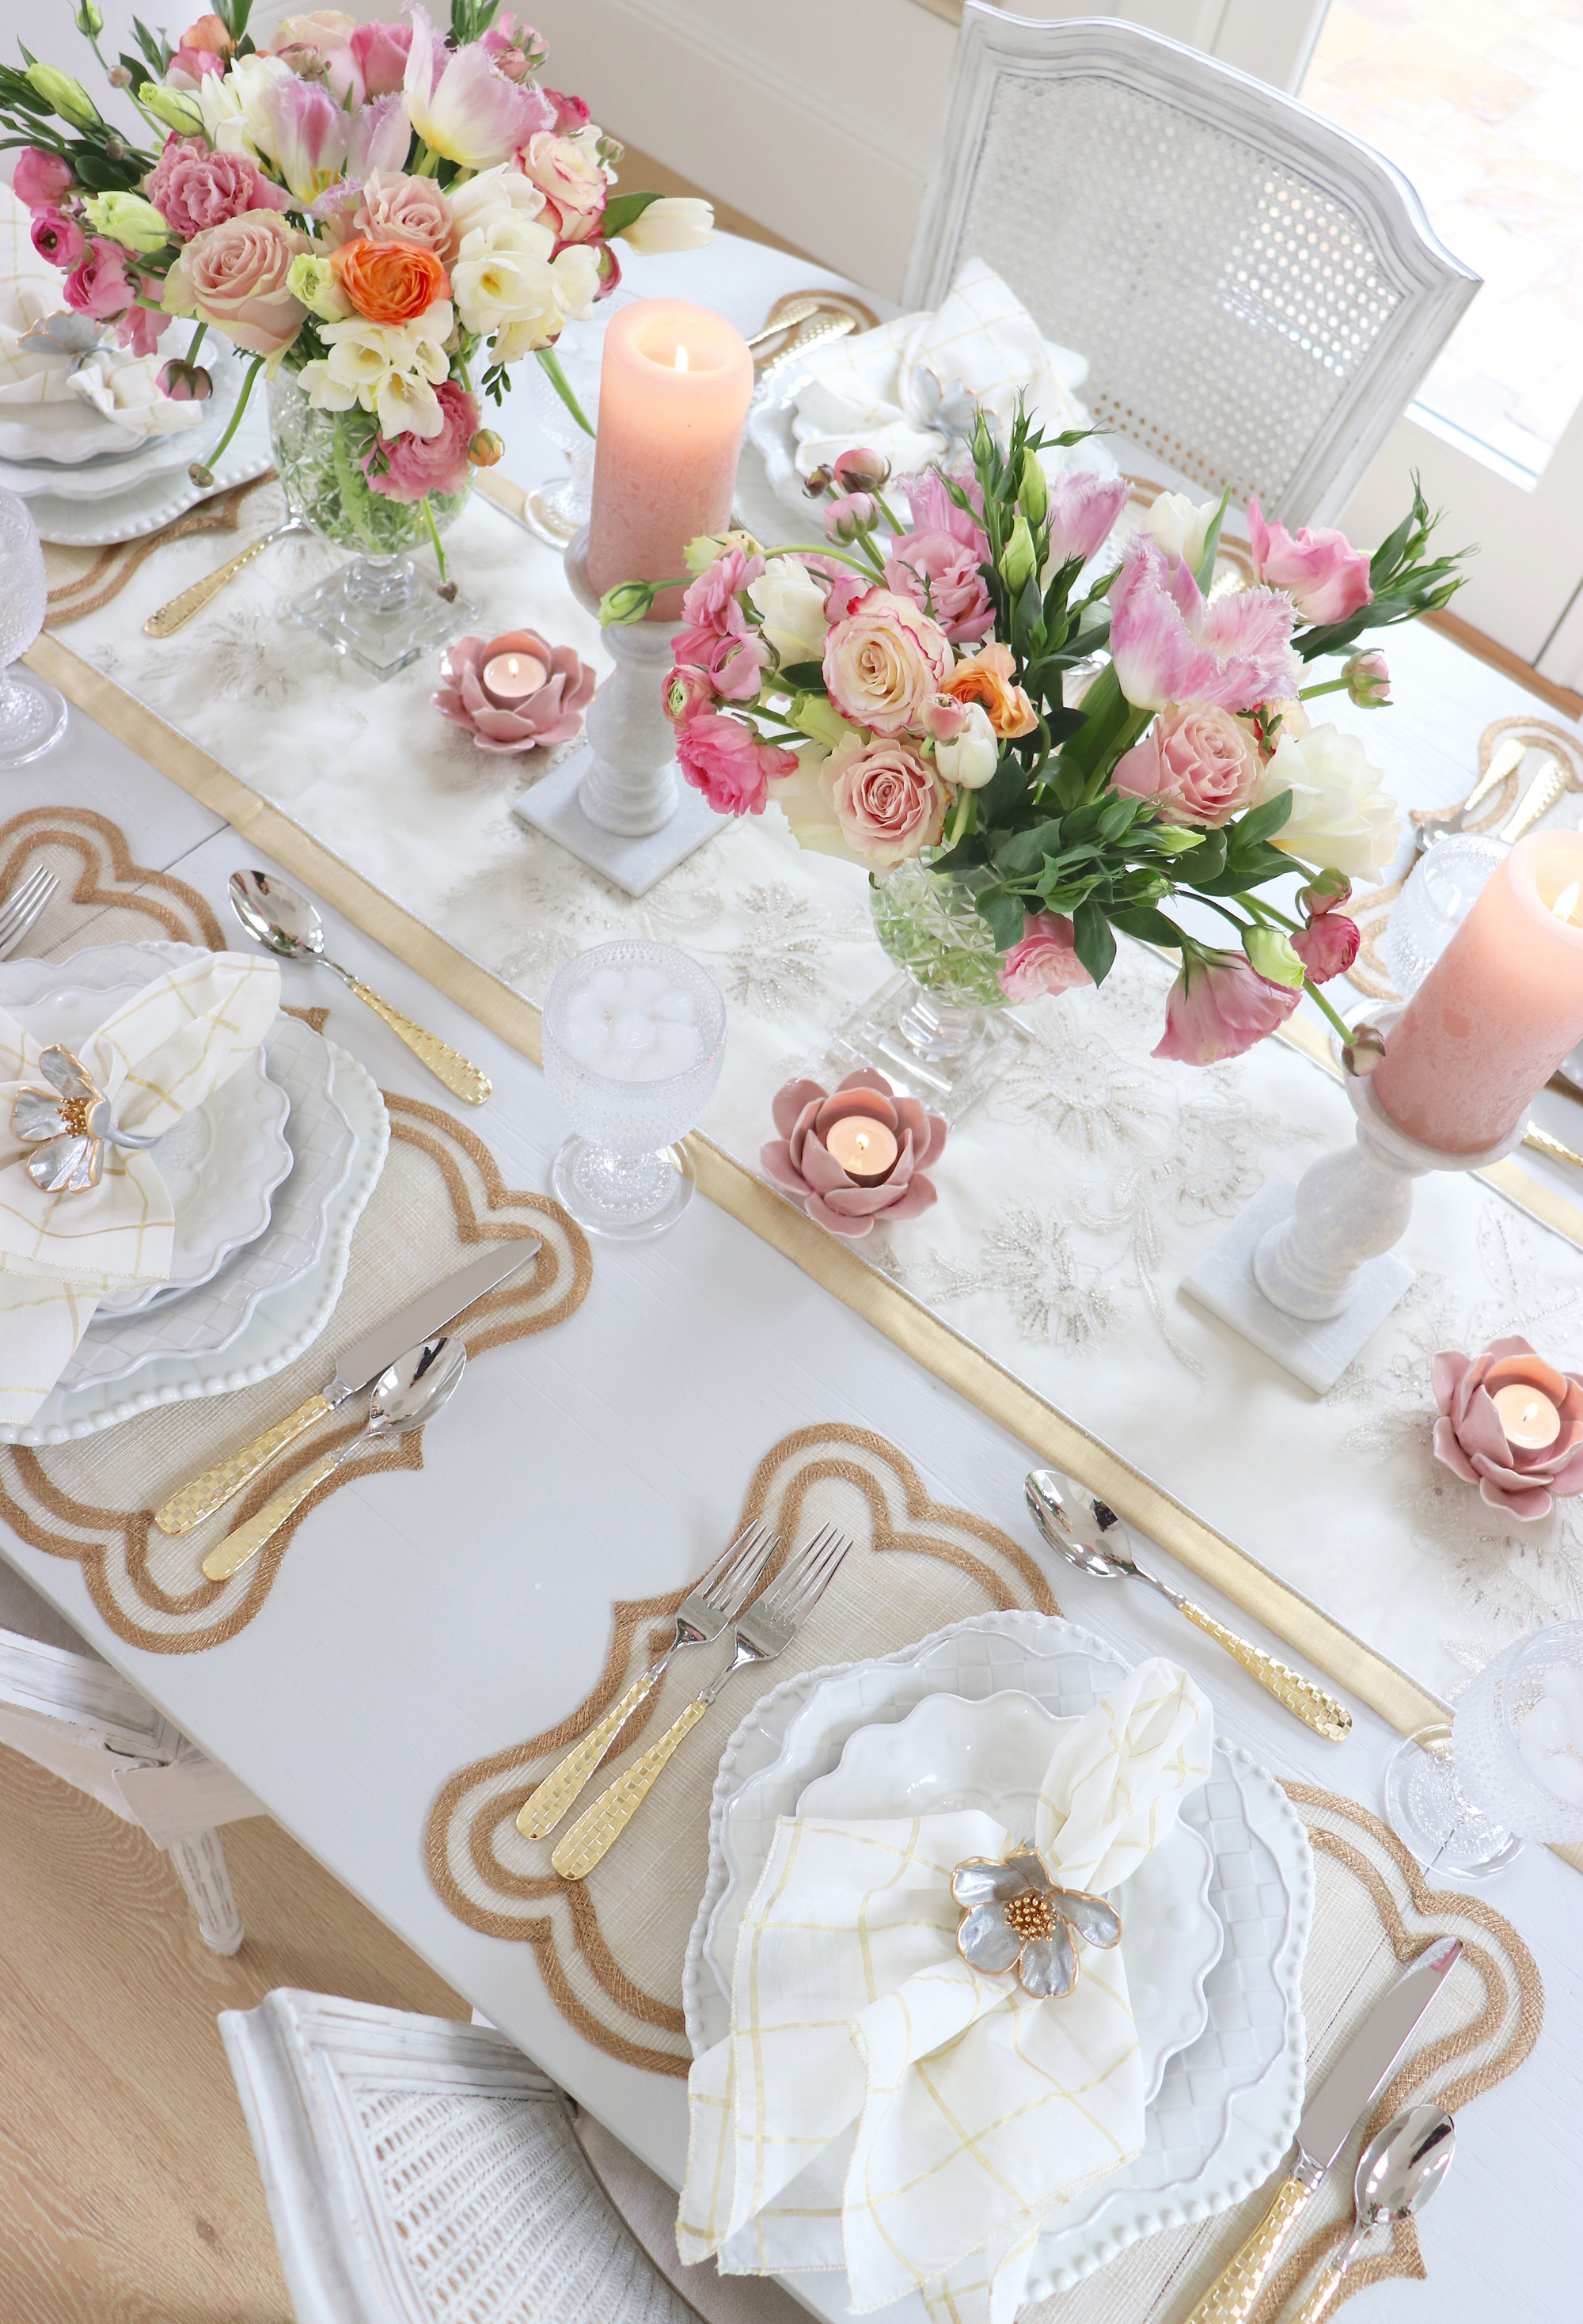 How To Create a Beautiful Spring Brunch Tablescape